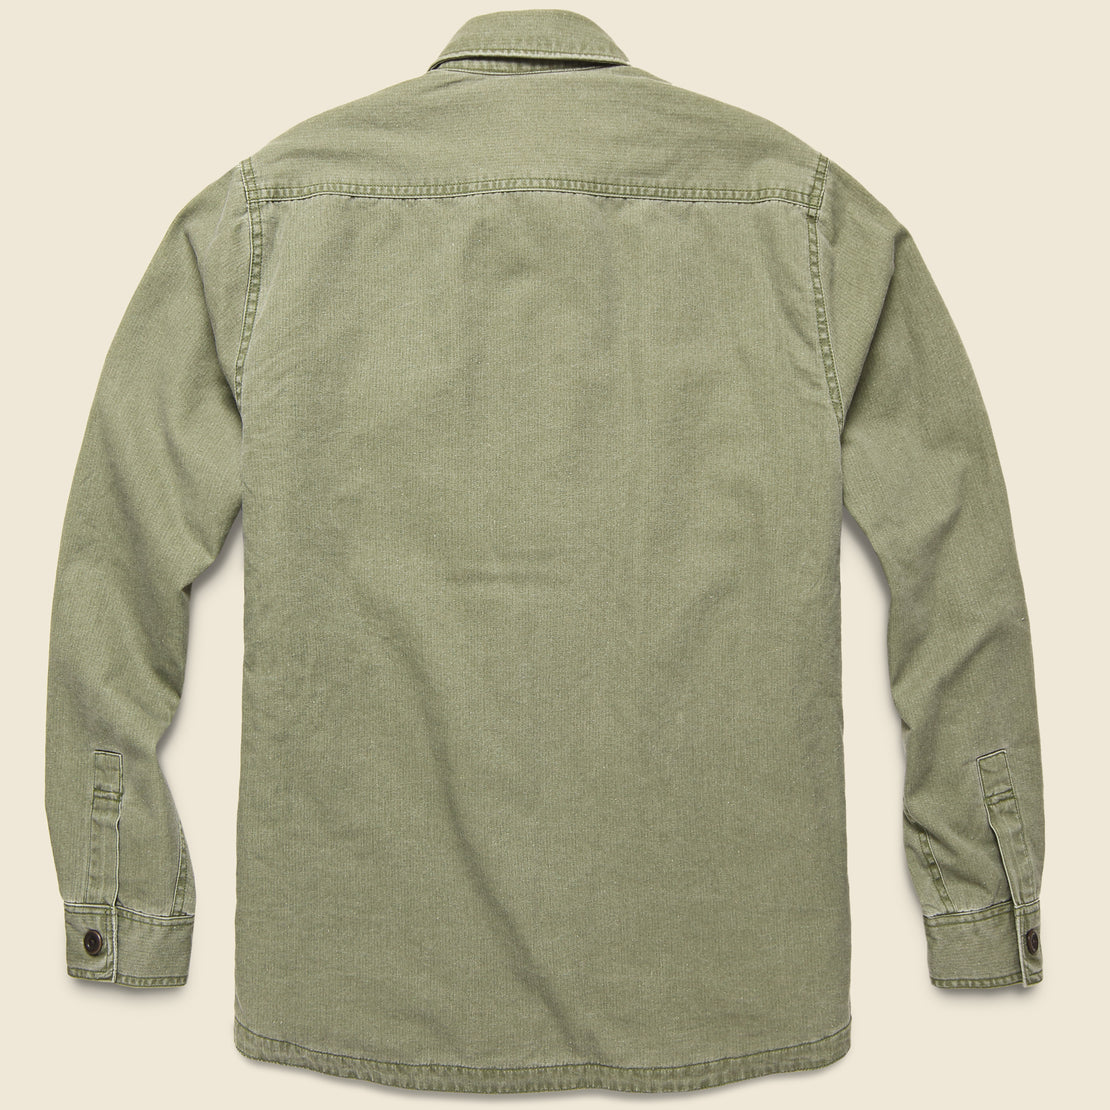 Blanket Lined CPO Shirt Jacket - Olive